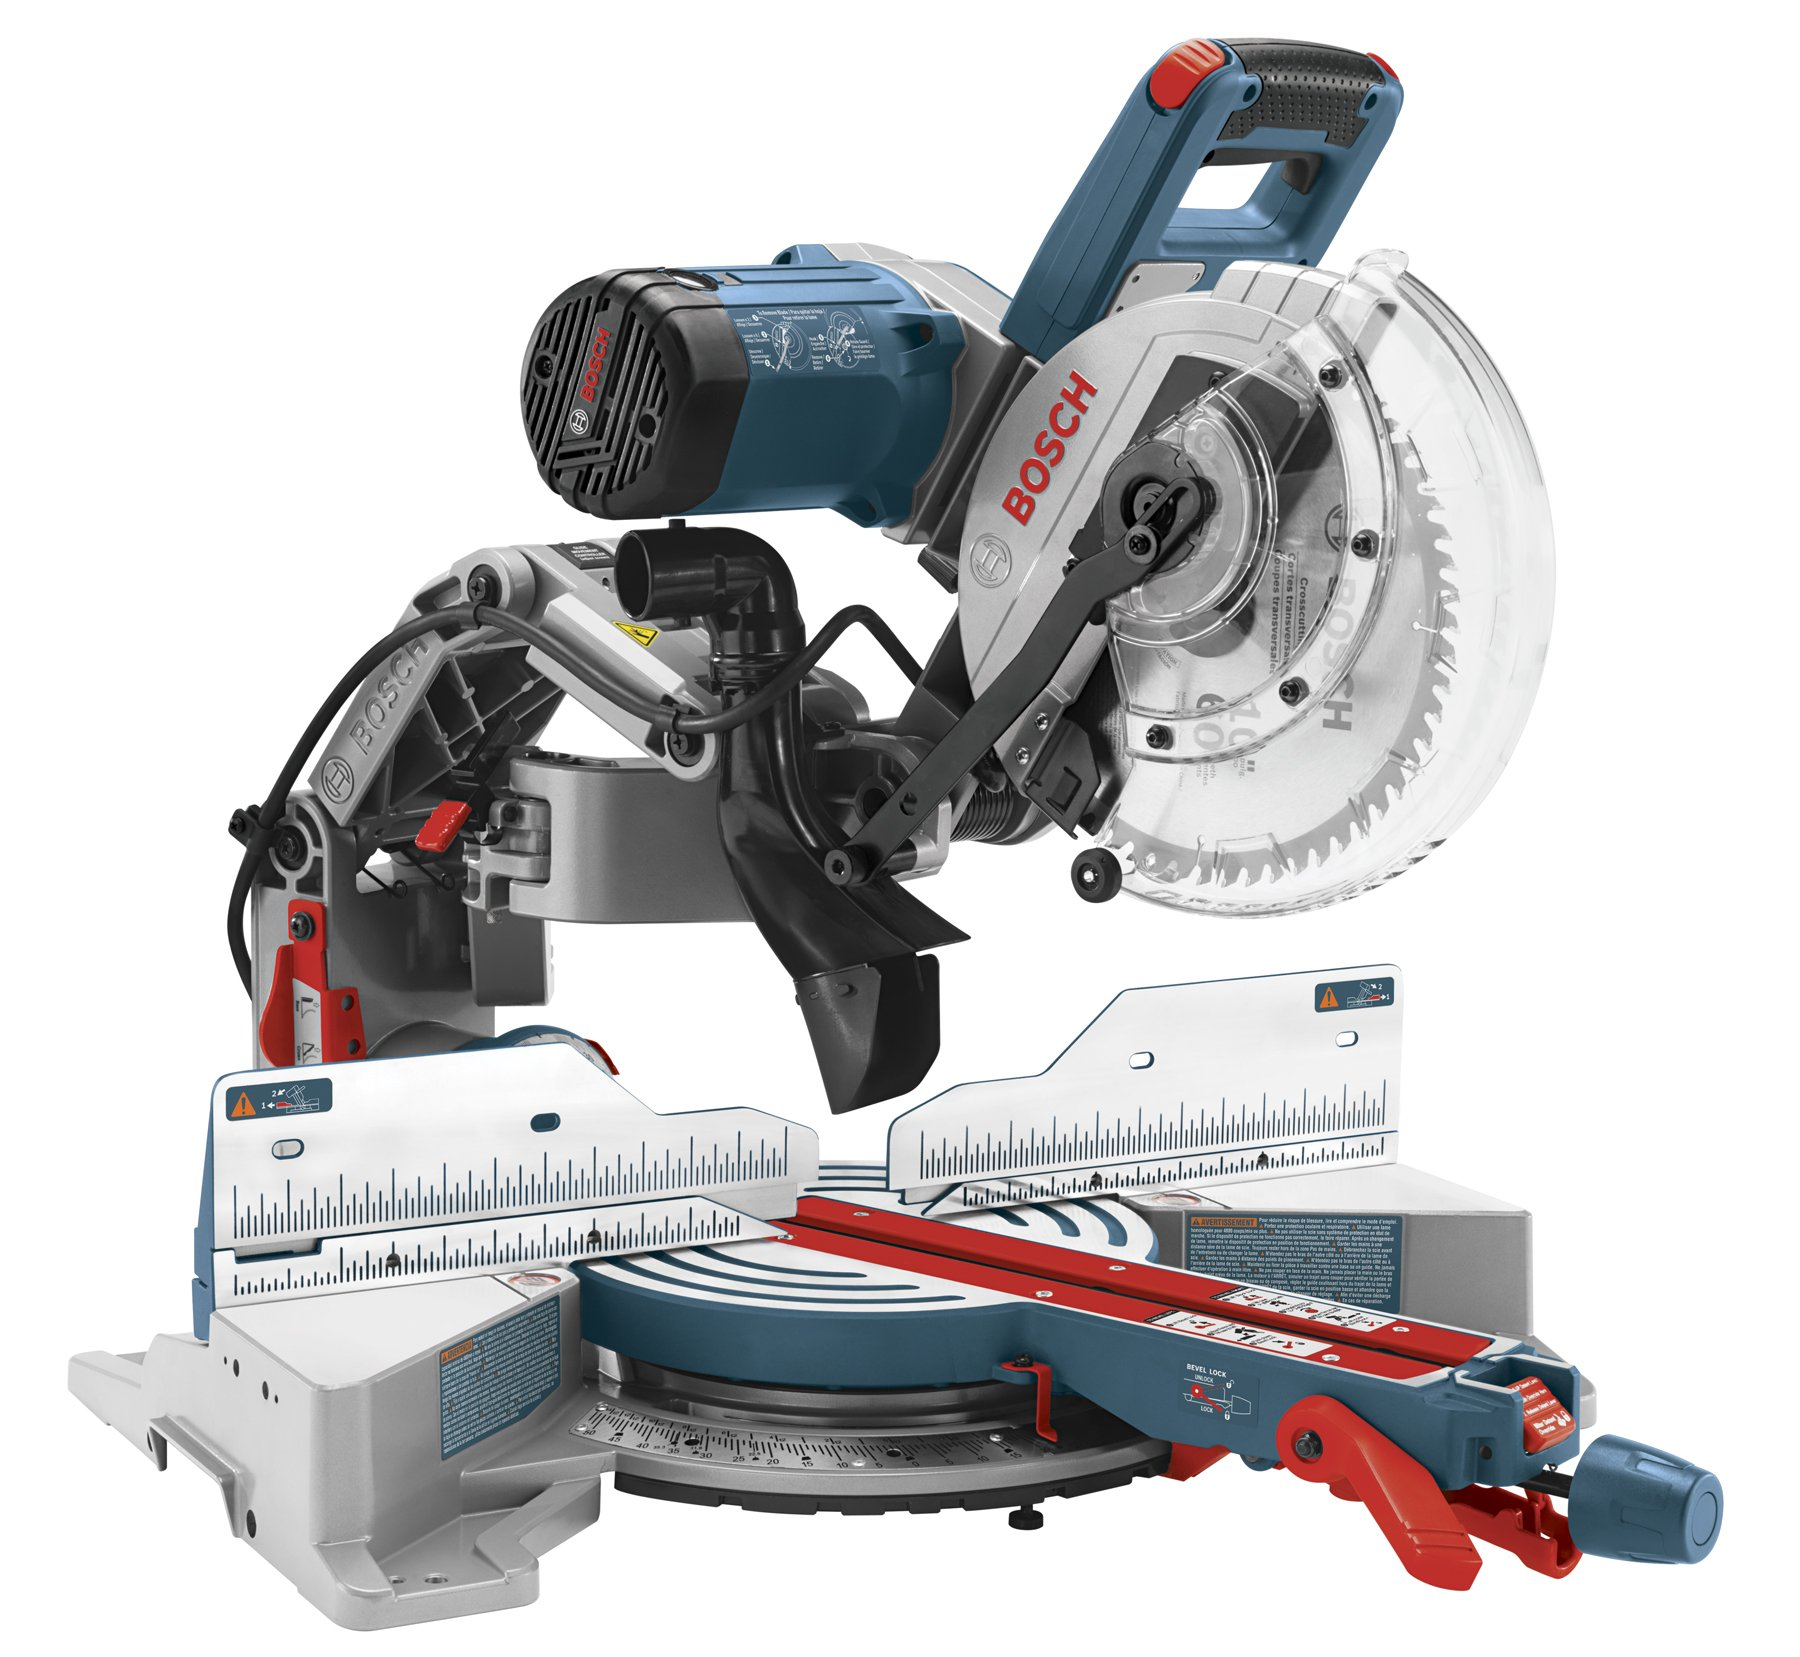 Bosch CM10GD Compact Miter Saw - 15 Amp Corded 10 in. Dual-Bevel Sliding Glide Miter Saw with 60-Tooth Carbide Saw Blade by BOSCH